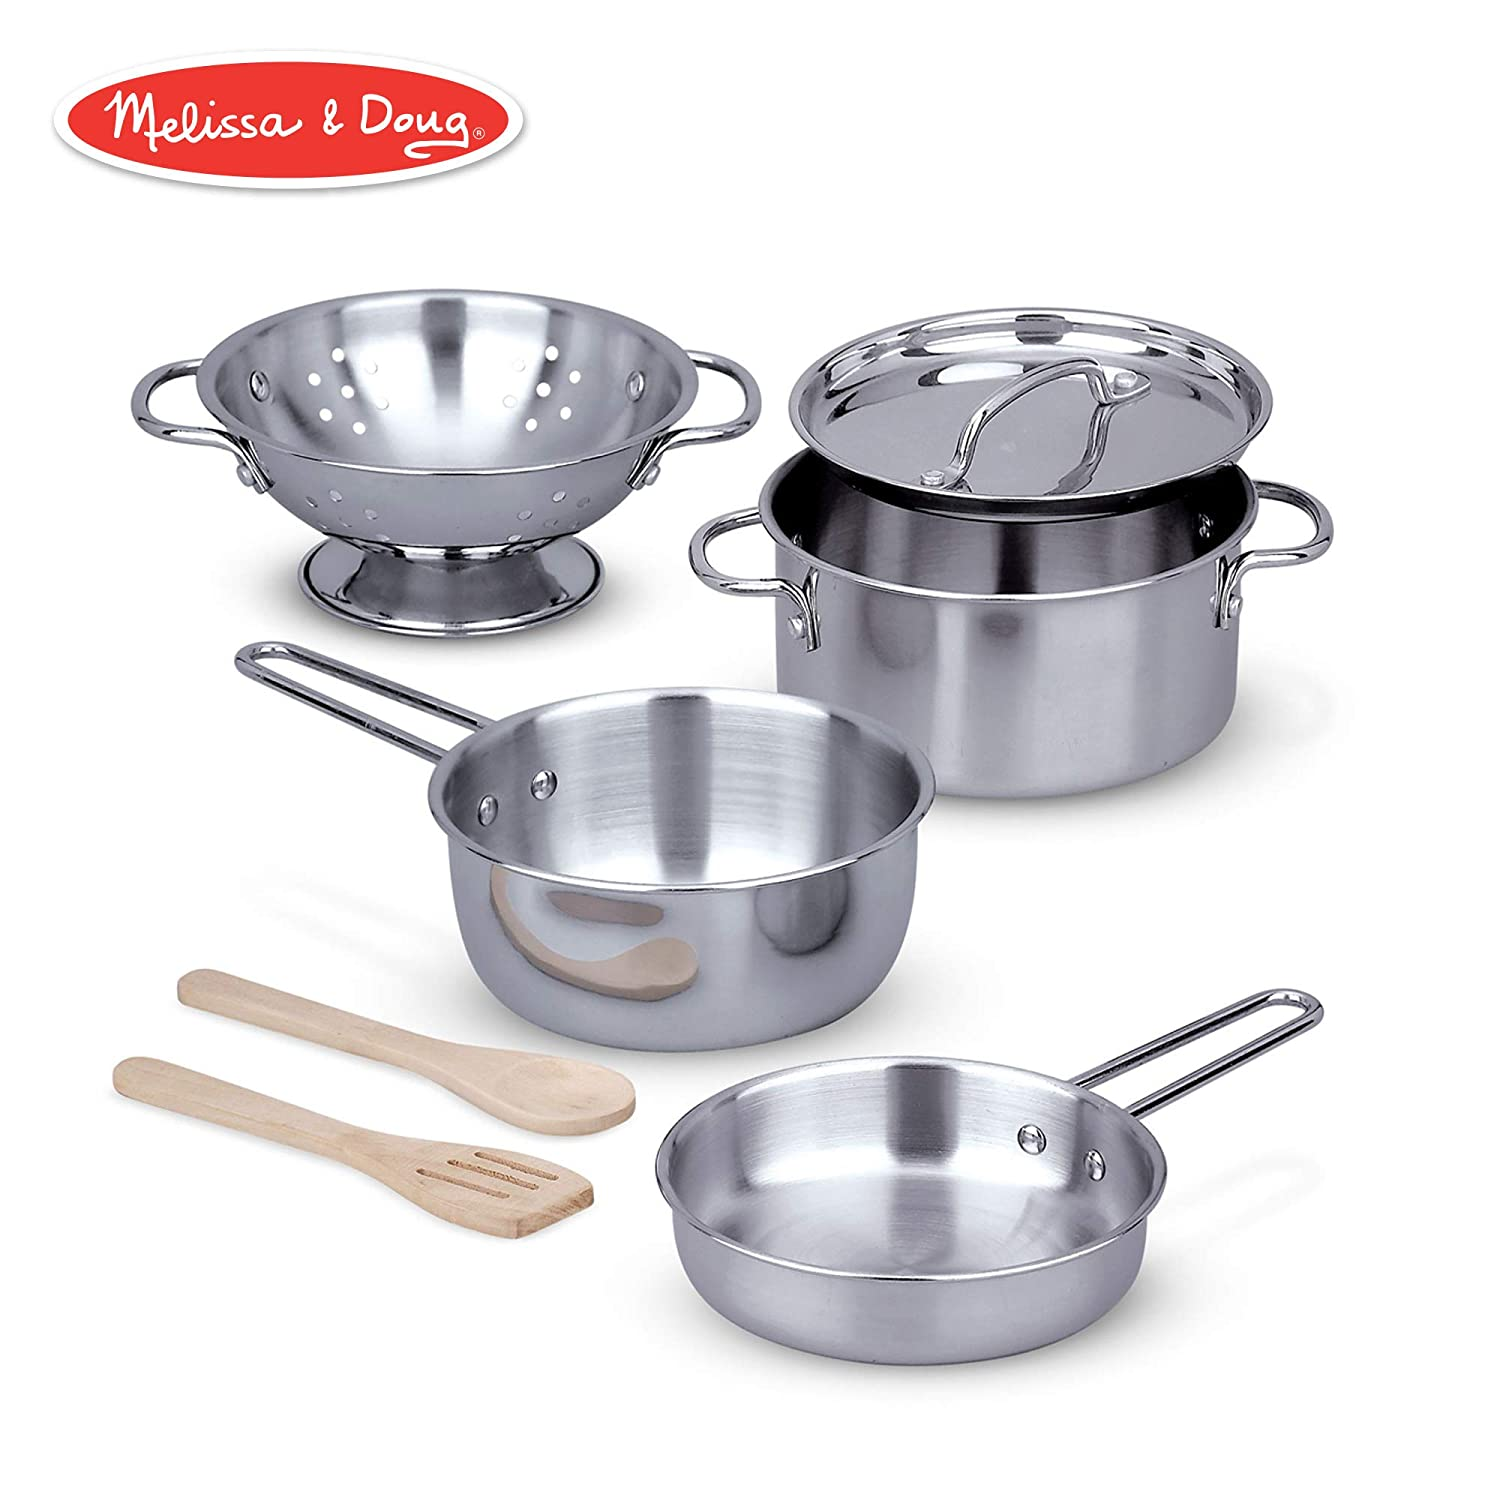 Melissa s play house stainless steel pots pans play set for kids construction 8 pieces 13 h x 6 w x 6 l